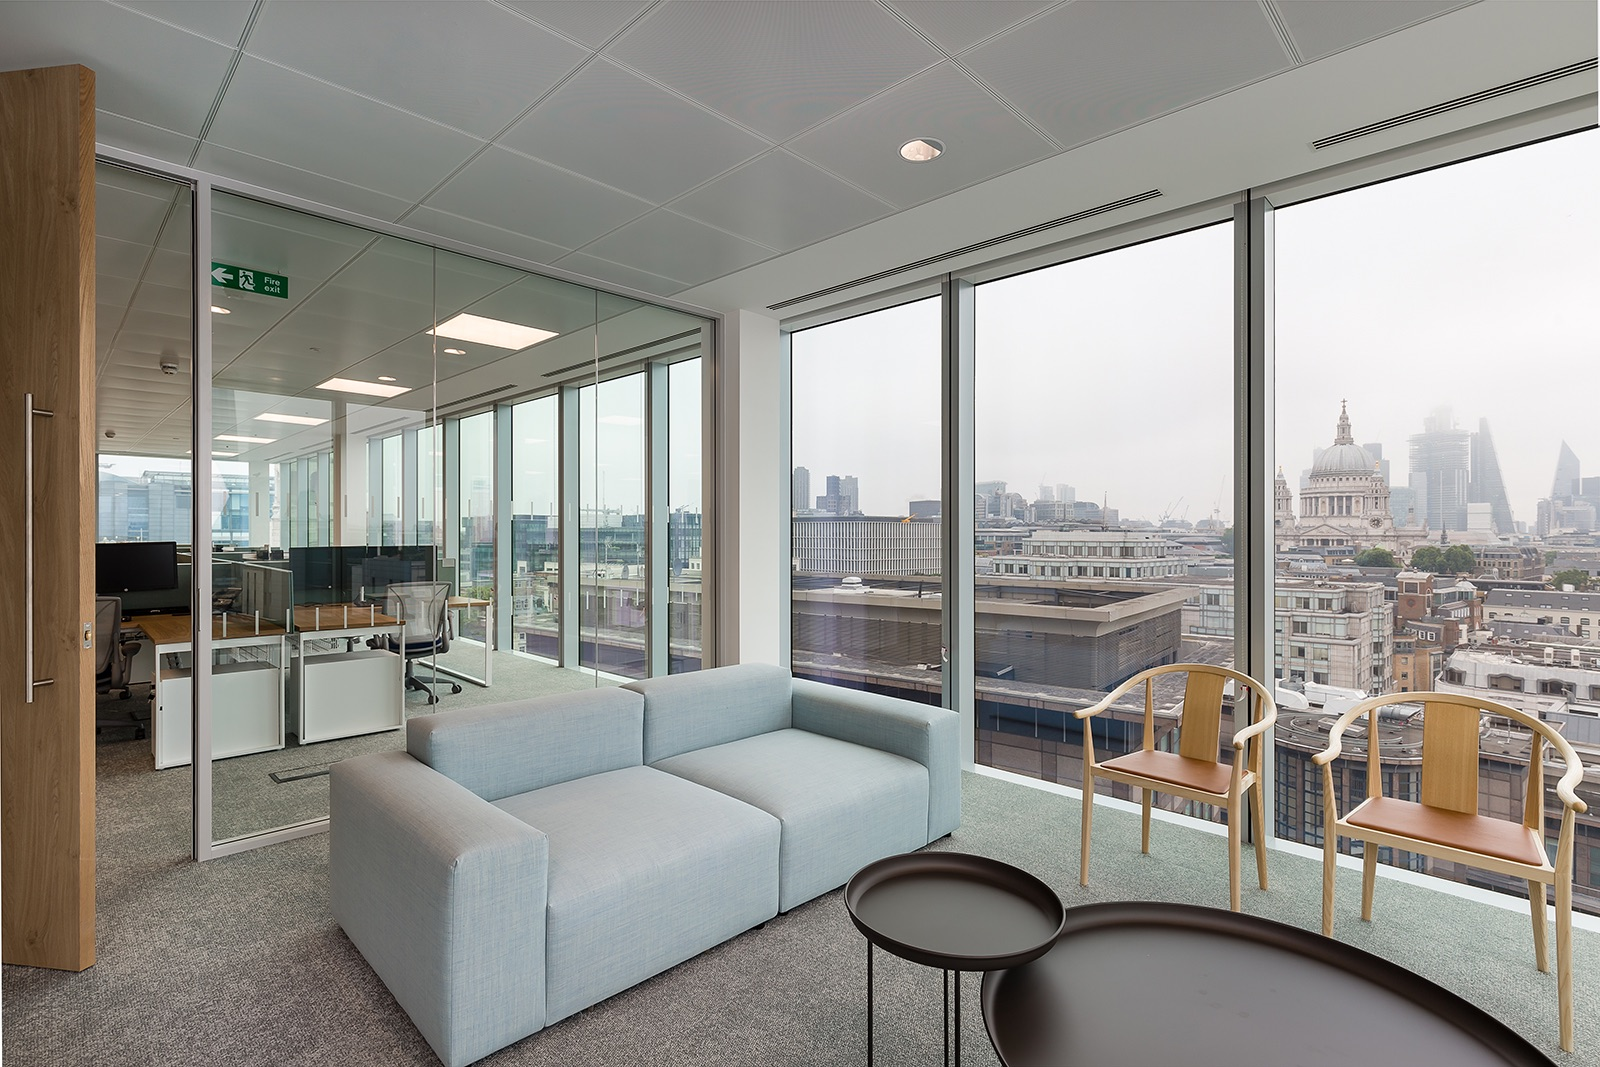 brg-london-office-10